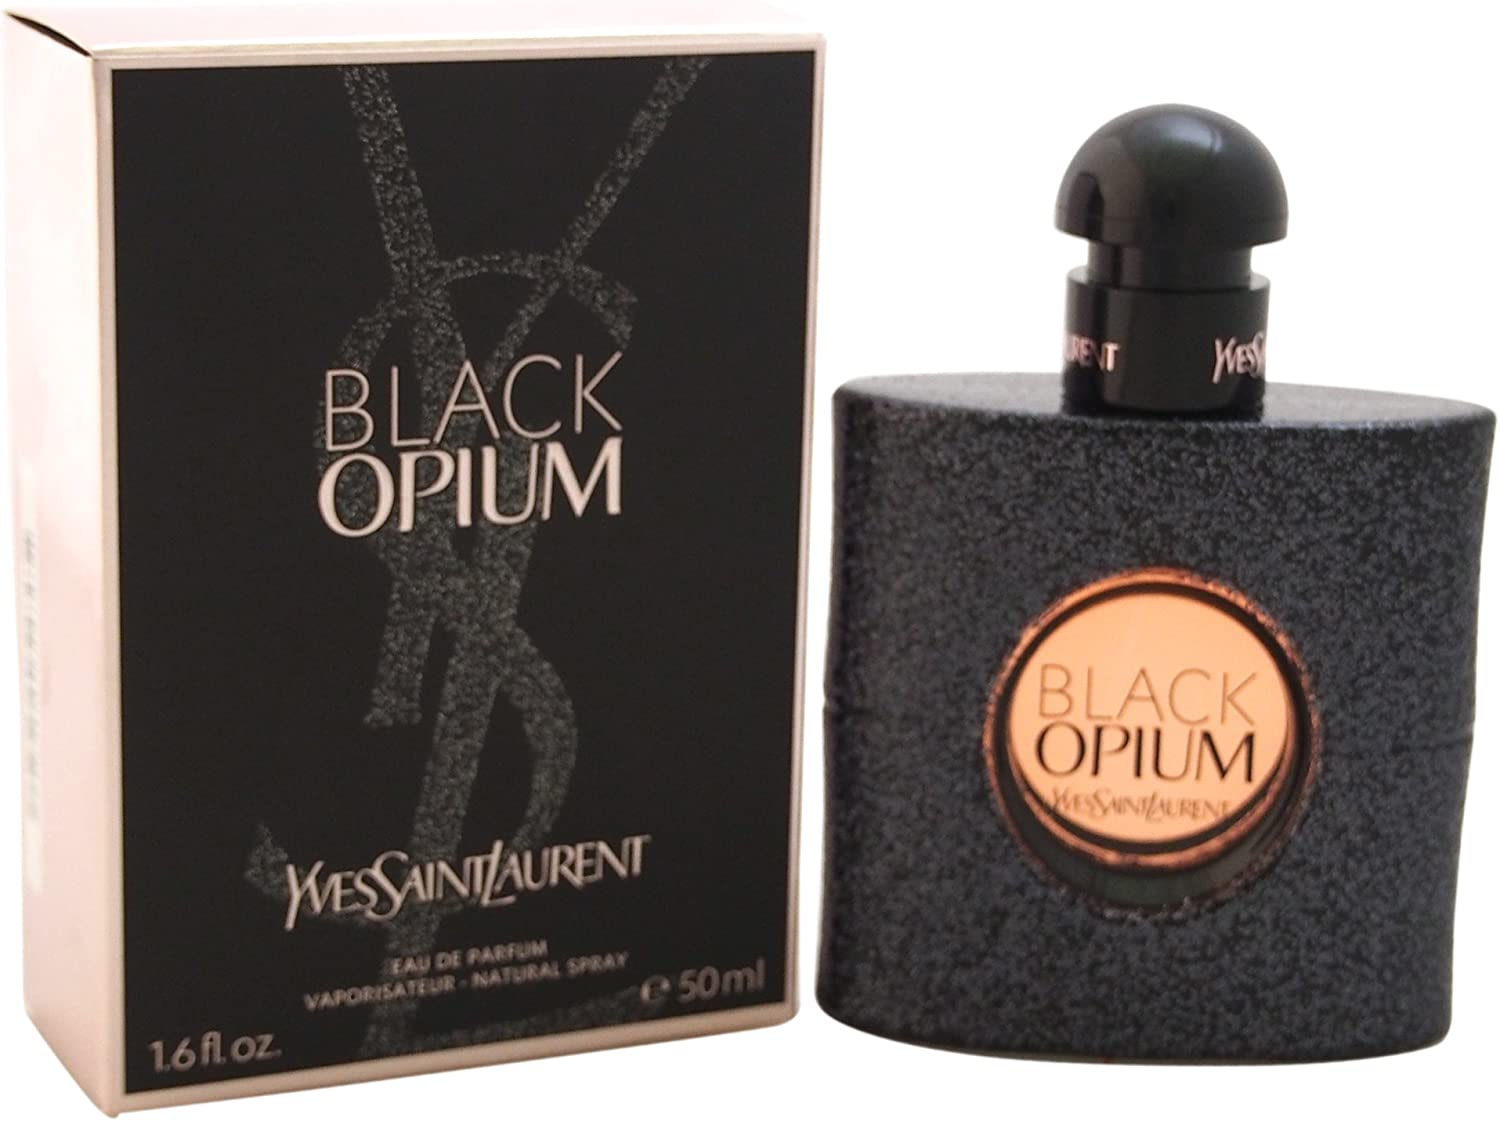 Yves Saint Laurent - Black Opium - EDP Spray, 50 ml: Amazon.es